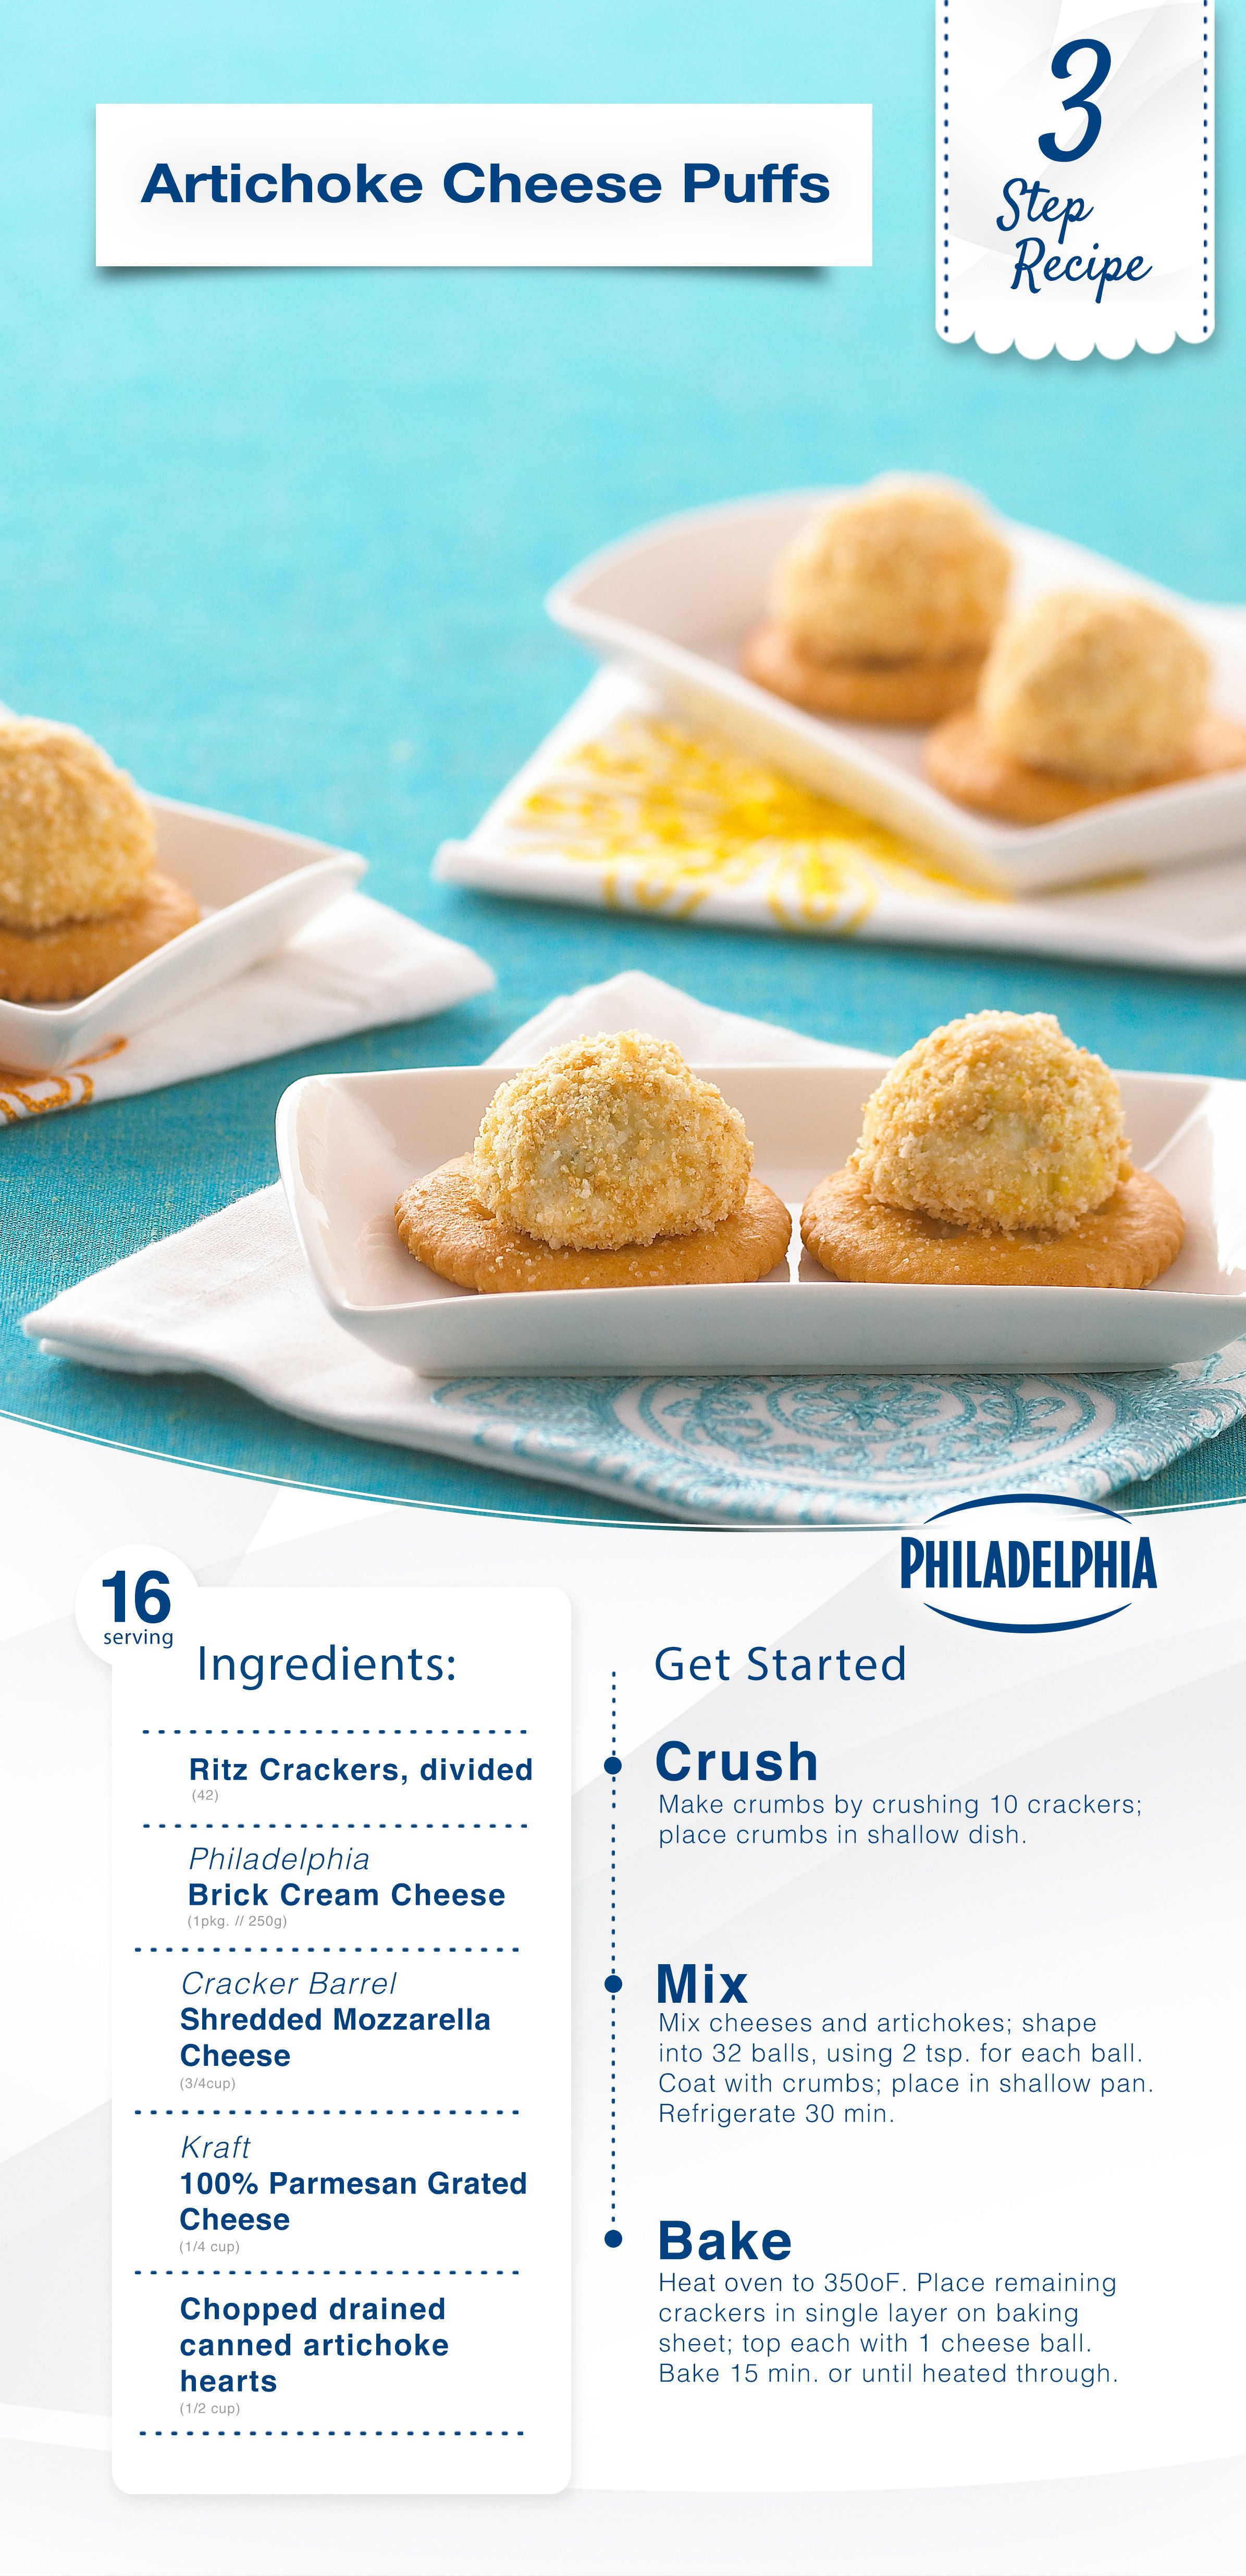 Artichoke Cheese Puffs Yummy Appetizers Parties Snack Recipes Cheese Puffs